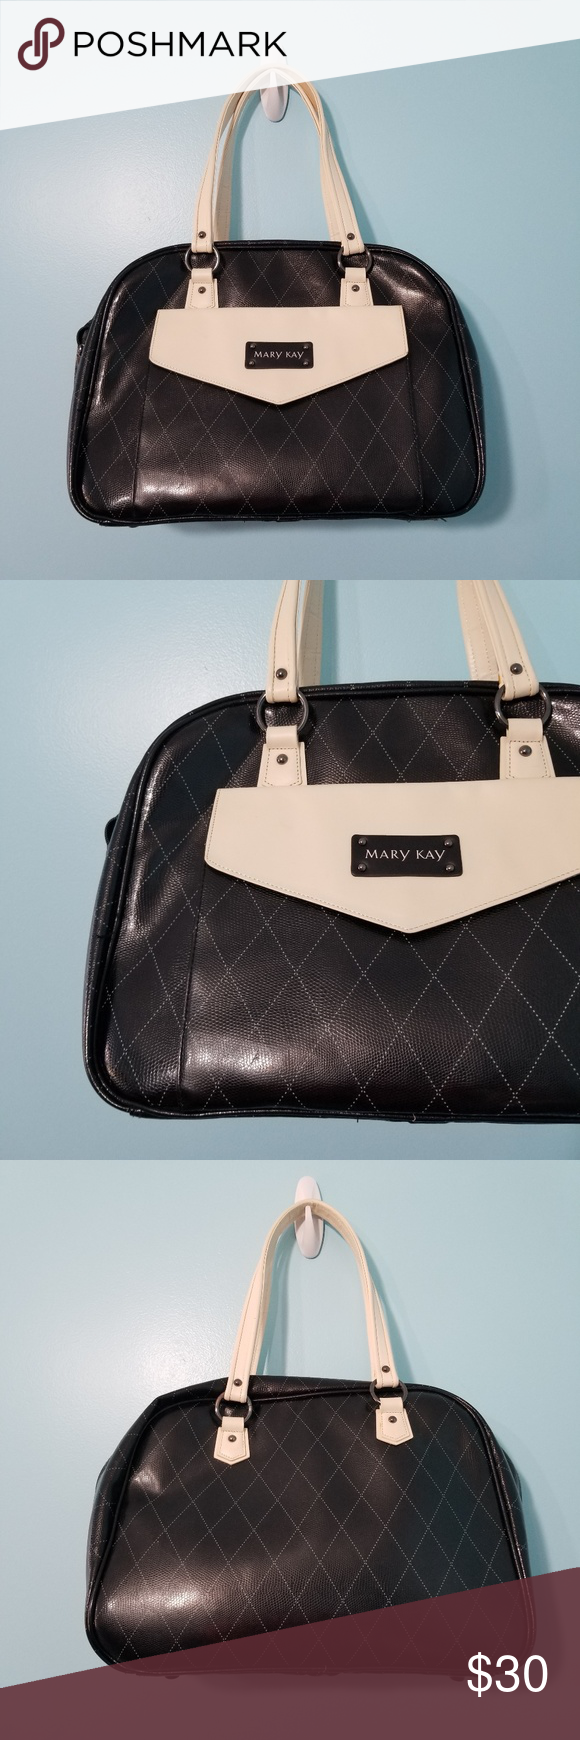 8684a2268b48 MARY KAY Black Tote Bag Mary Kay bag. Removable storage compartments. Front  pocket with flap. Diamond pattern. Cream straps. Excellent condition!